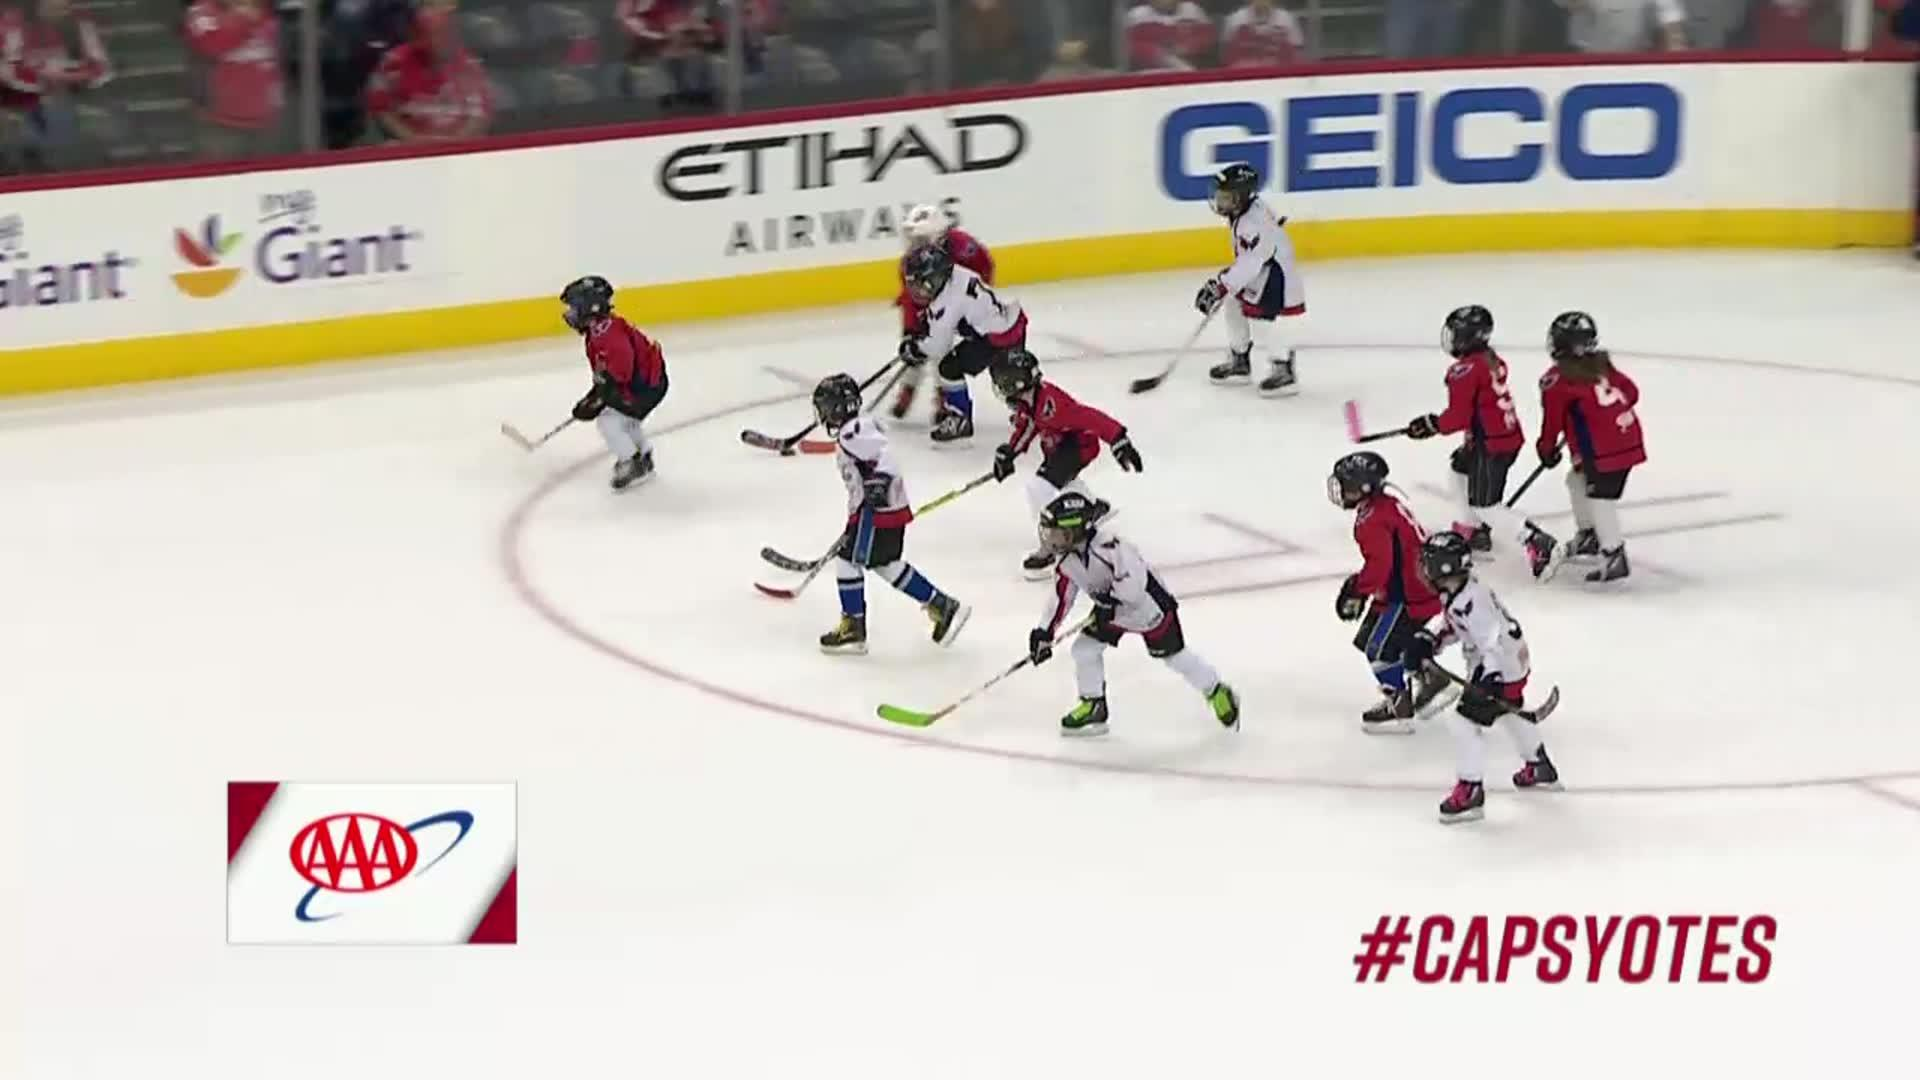 #CapsYotes Mites on Ice 11/6/17